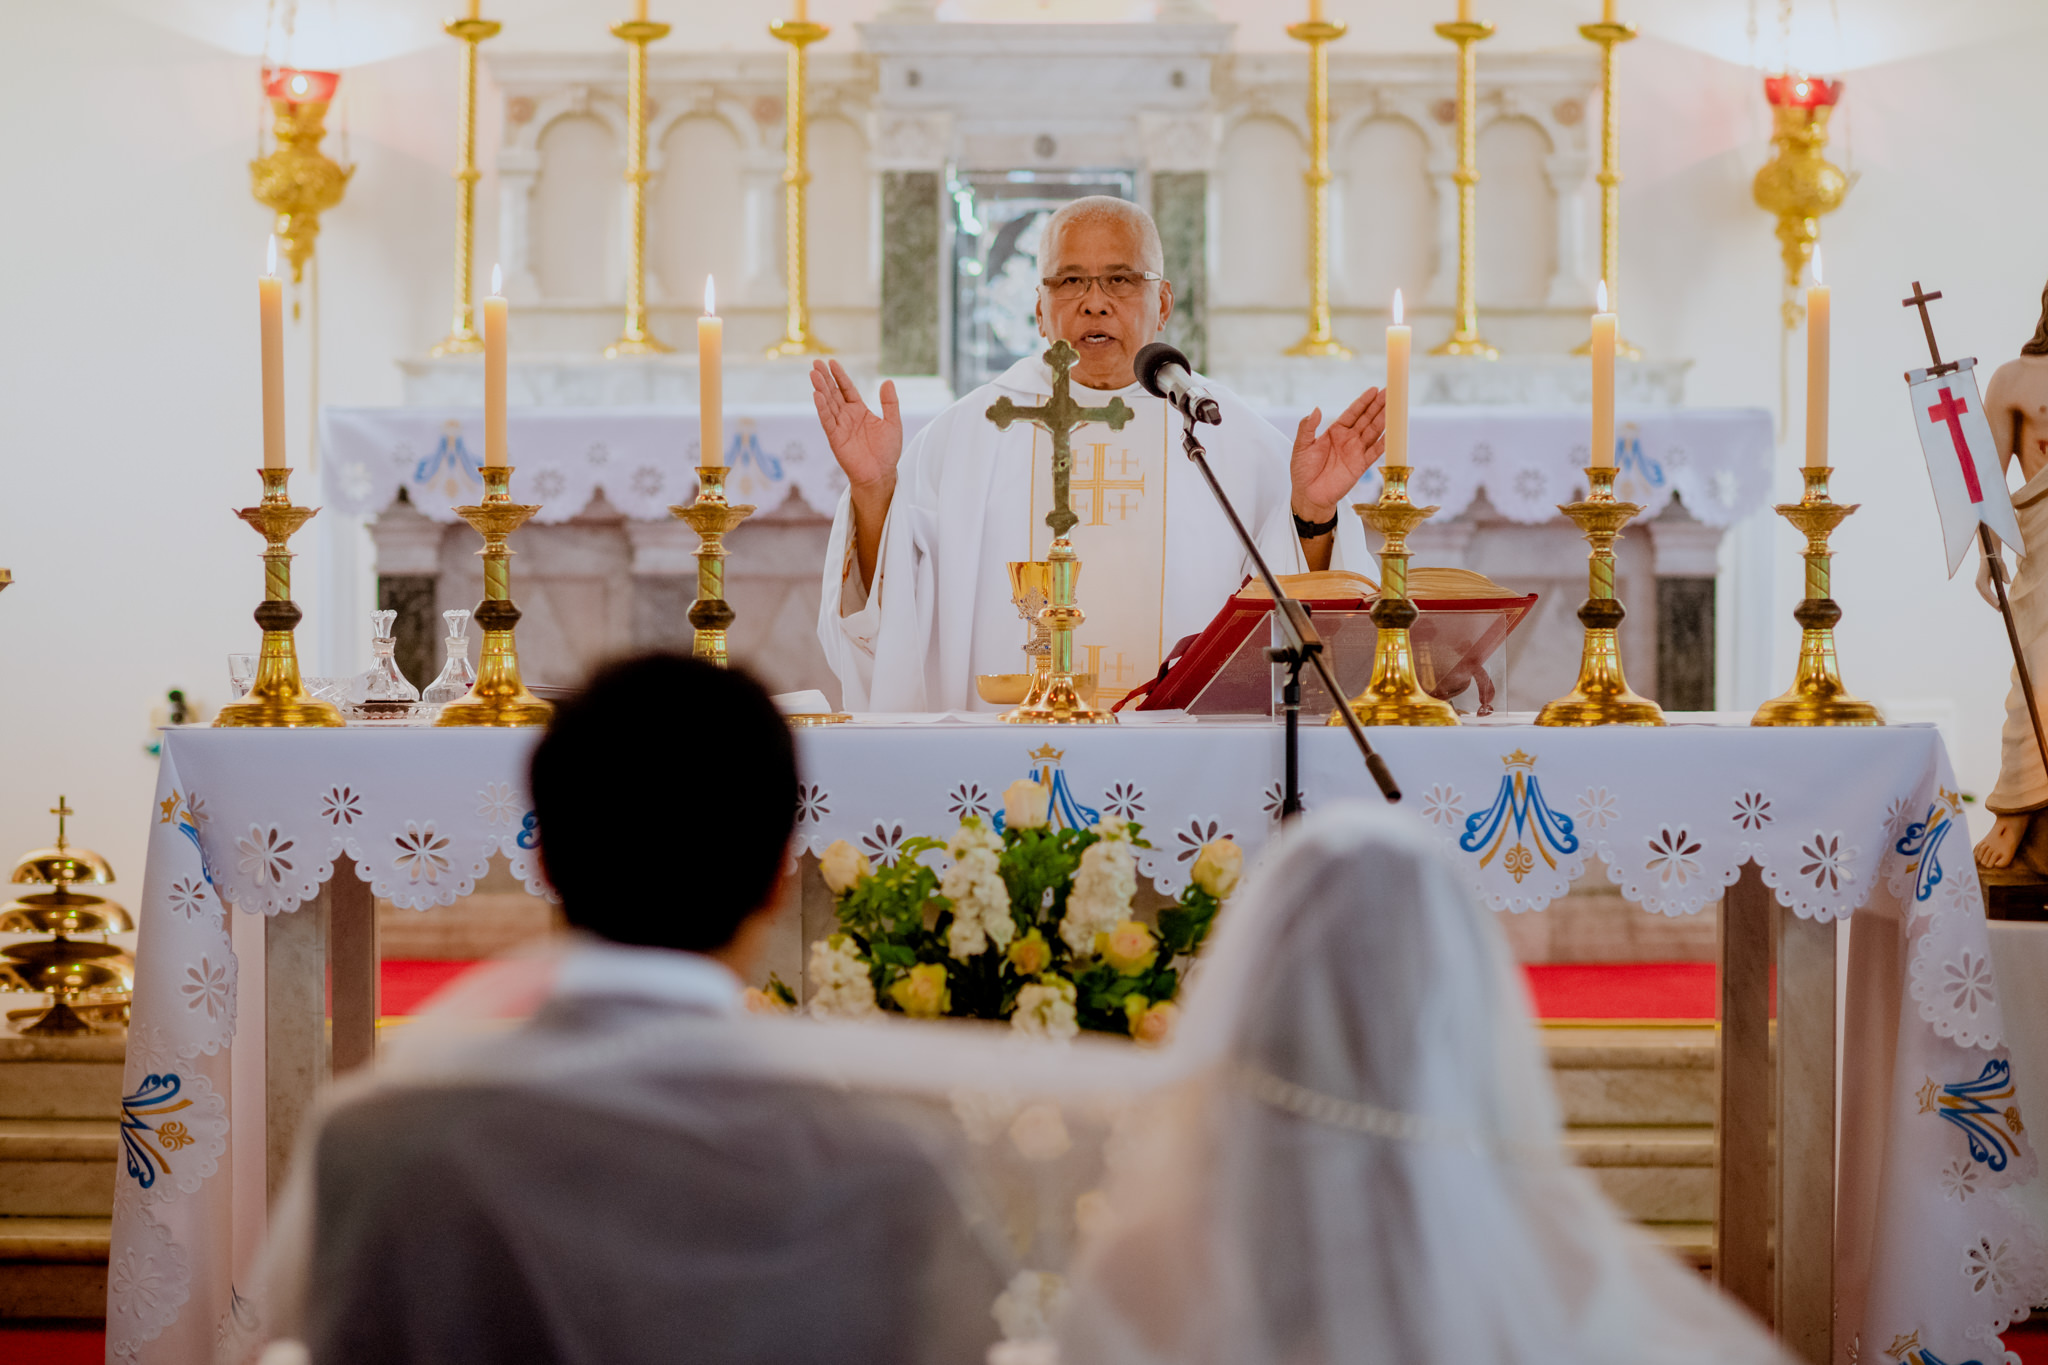 Catholic priest stretches his hands out as bride and groom kneel in front of him